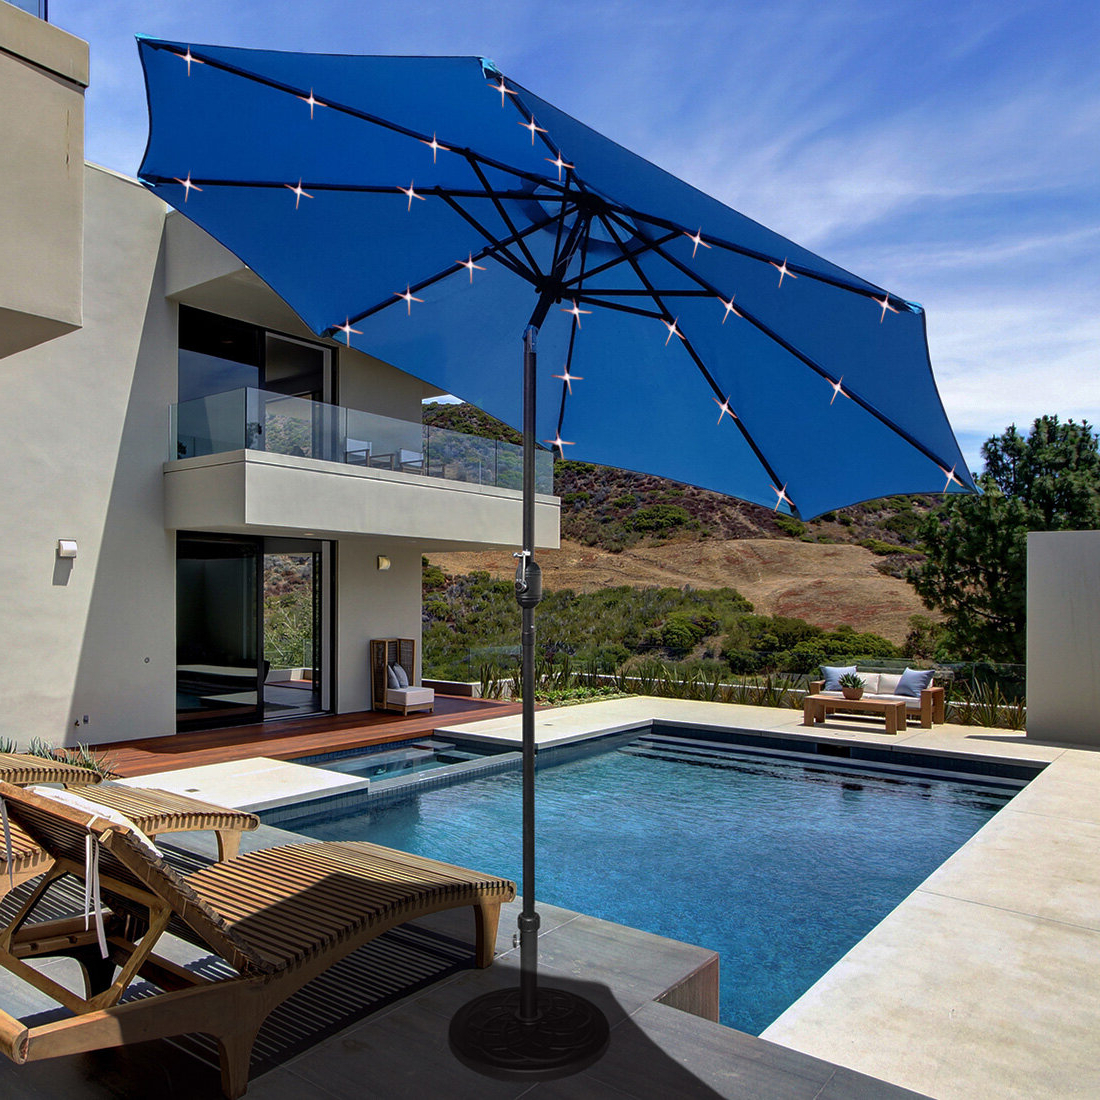 Fashionable Brecht Lighted Umbrellas For Solar Led Lighted Patio 9' Market Umbrella (View 11 of 20)